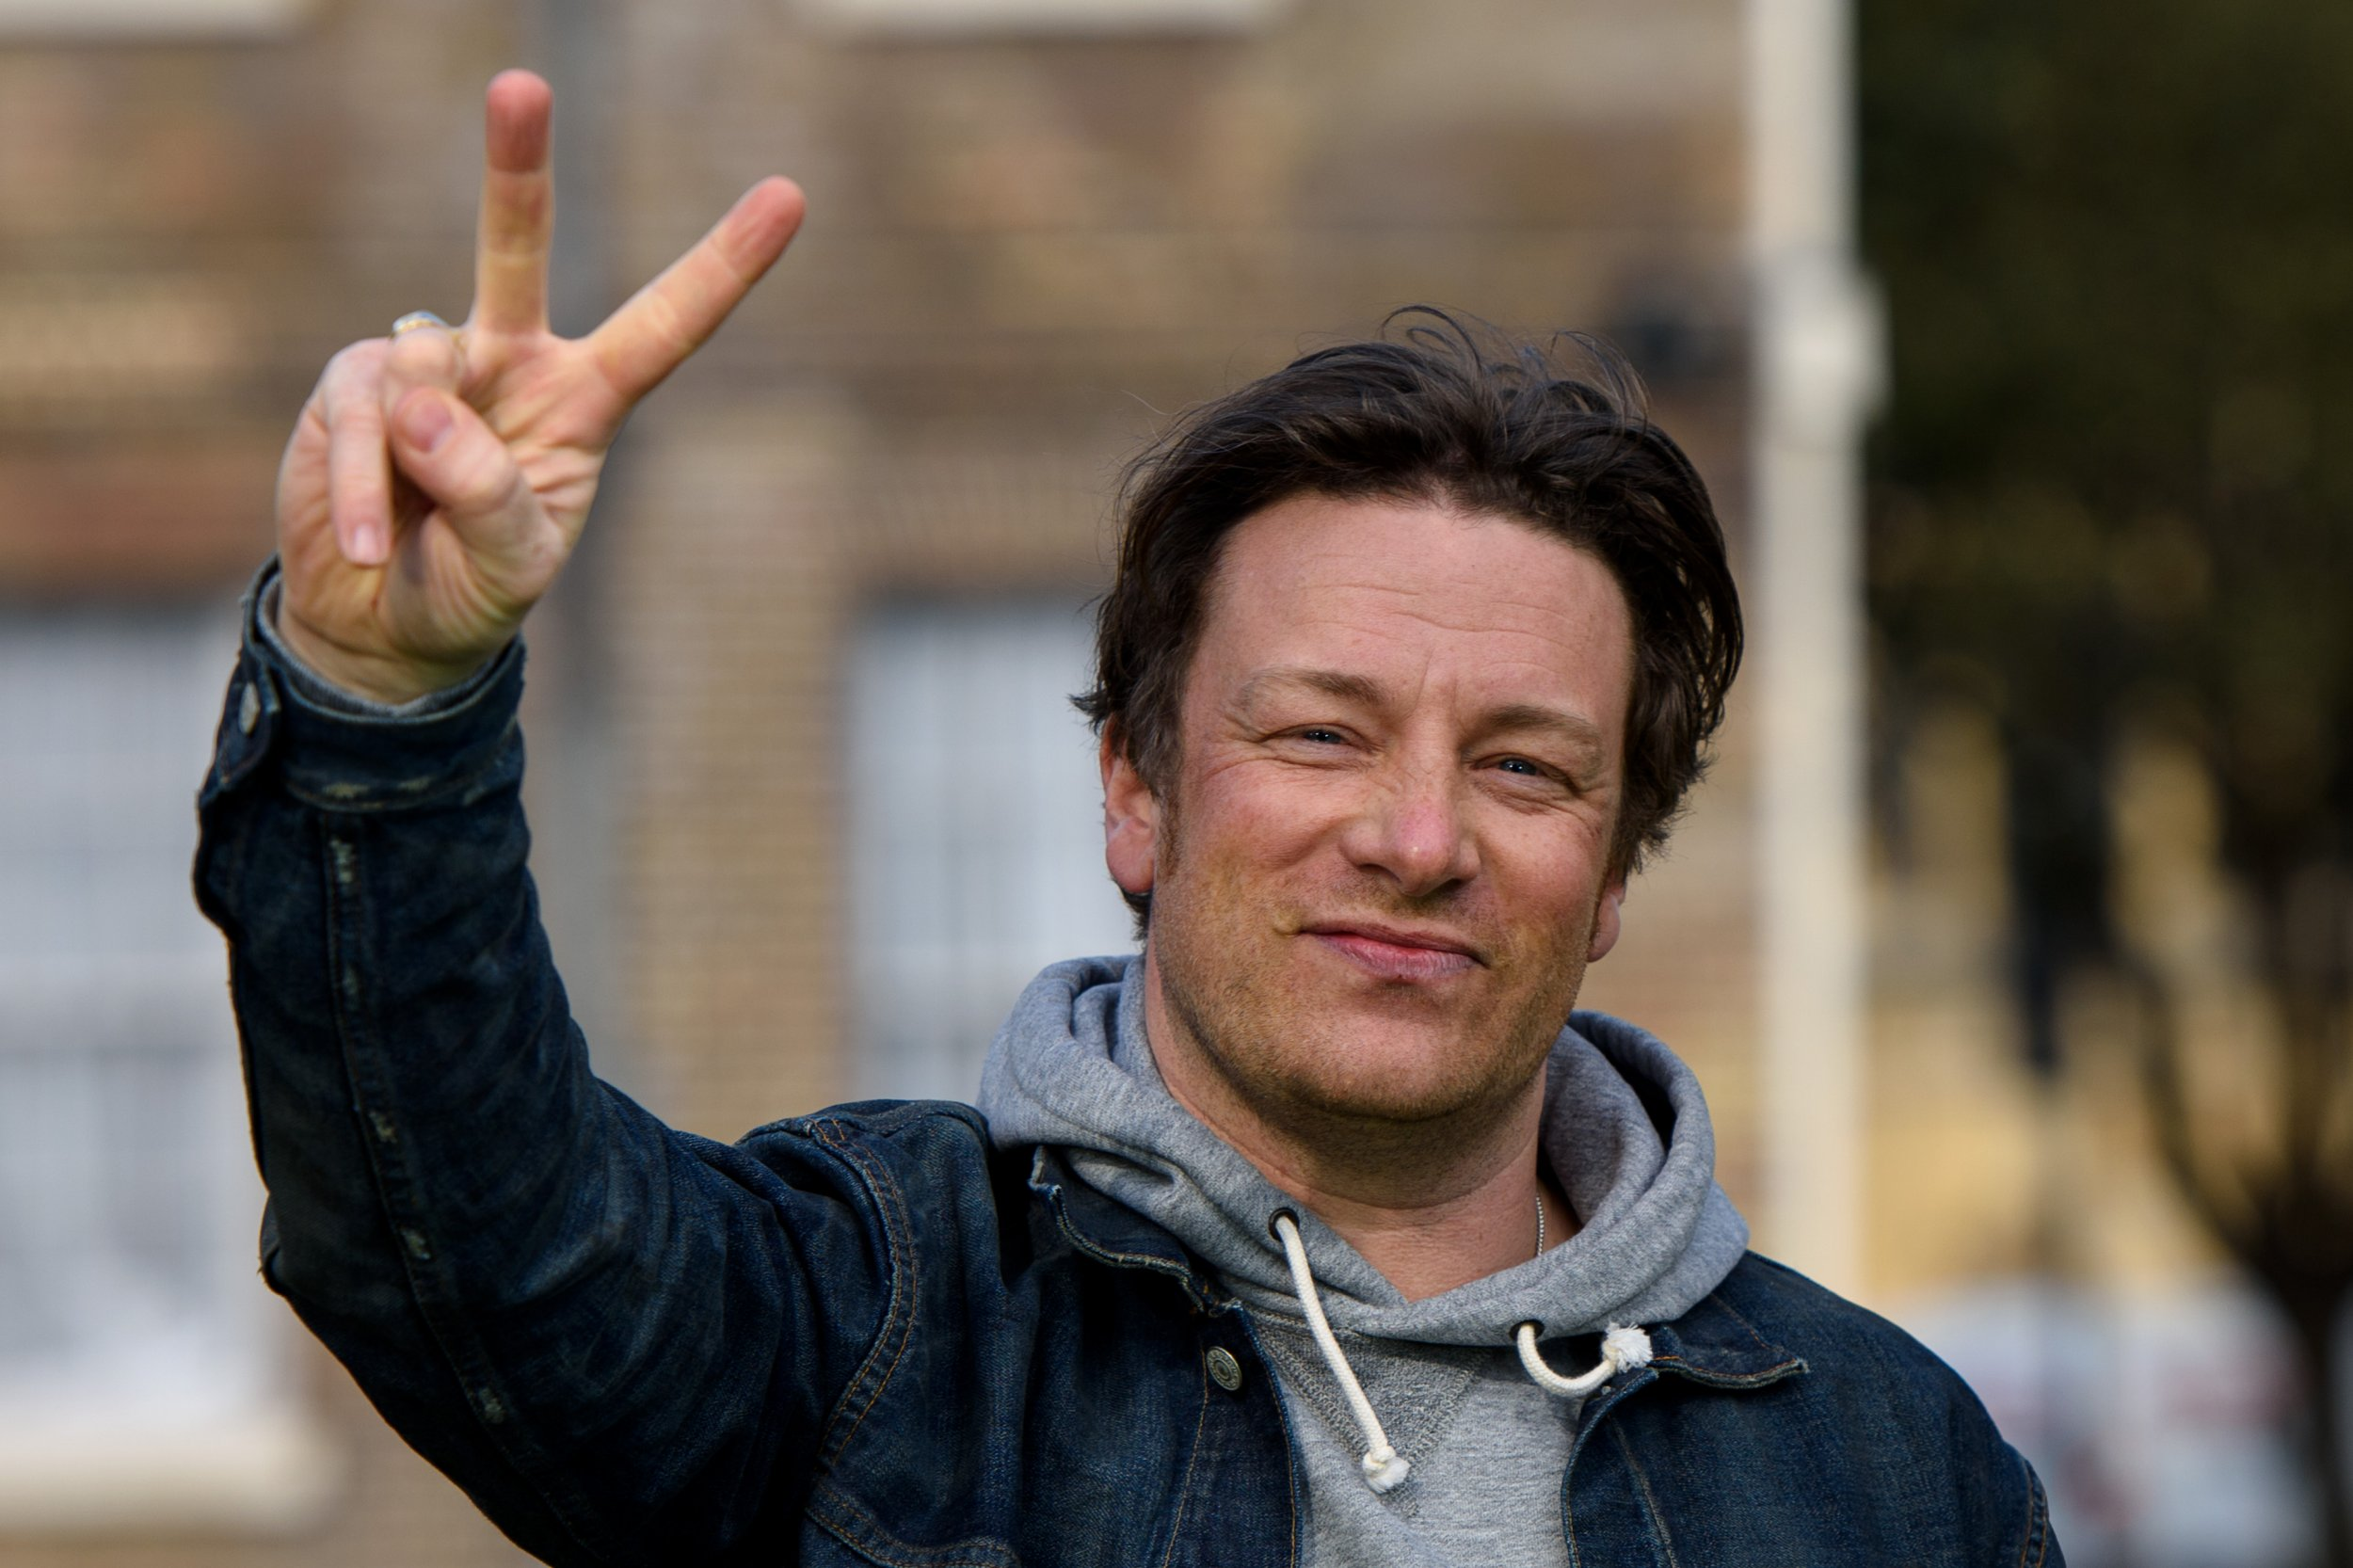 Jamie and Jools Oliver might just have revealed the name of their newborn son